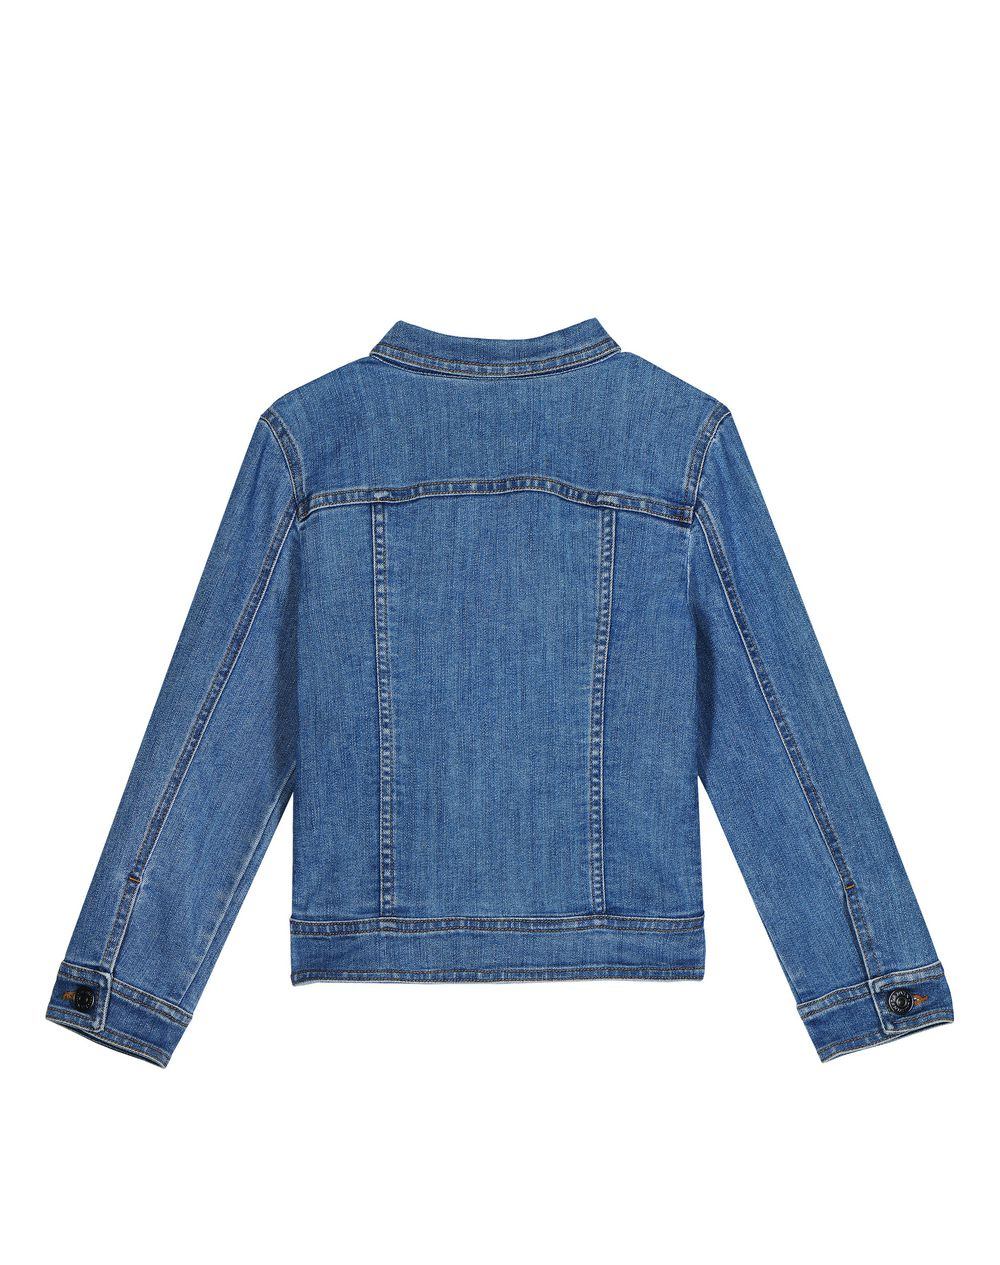 BLUE DENIM JACKET    - Lanvin